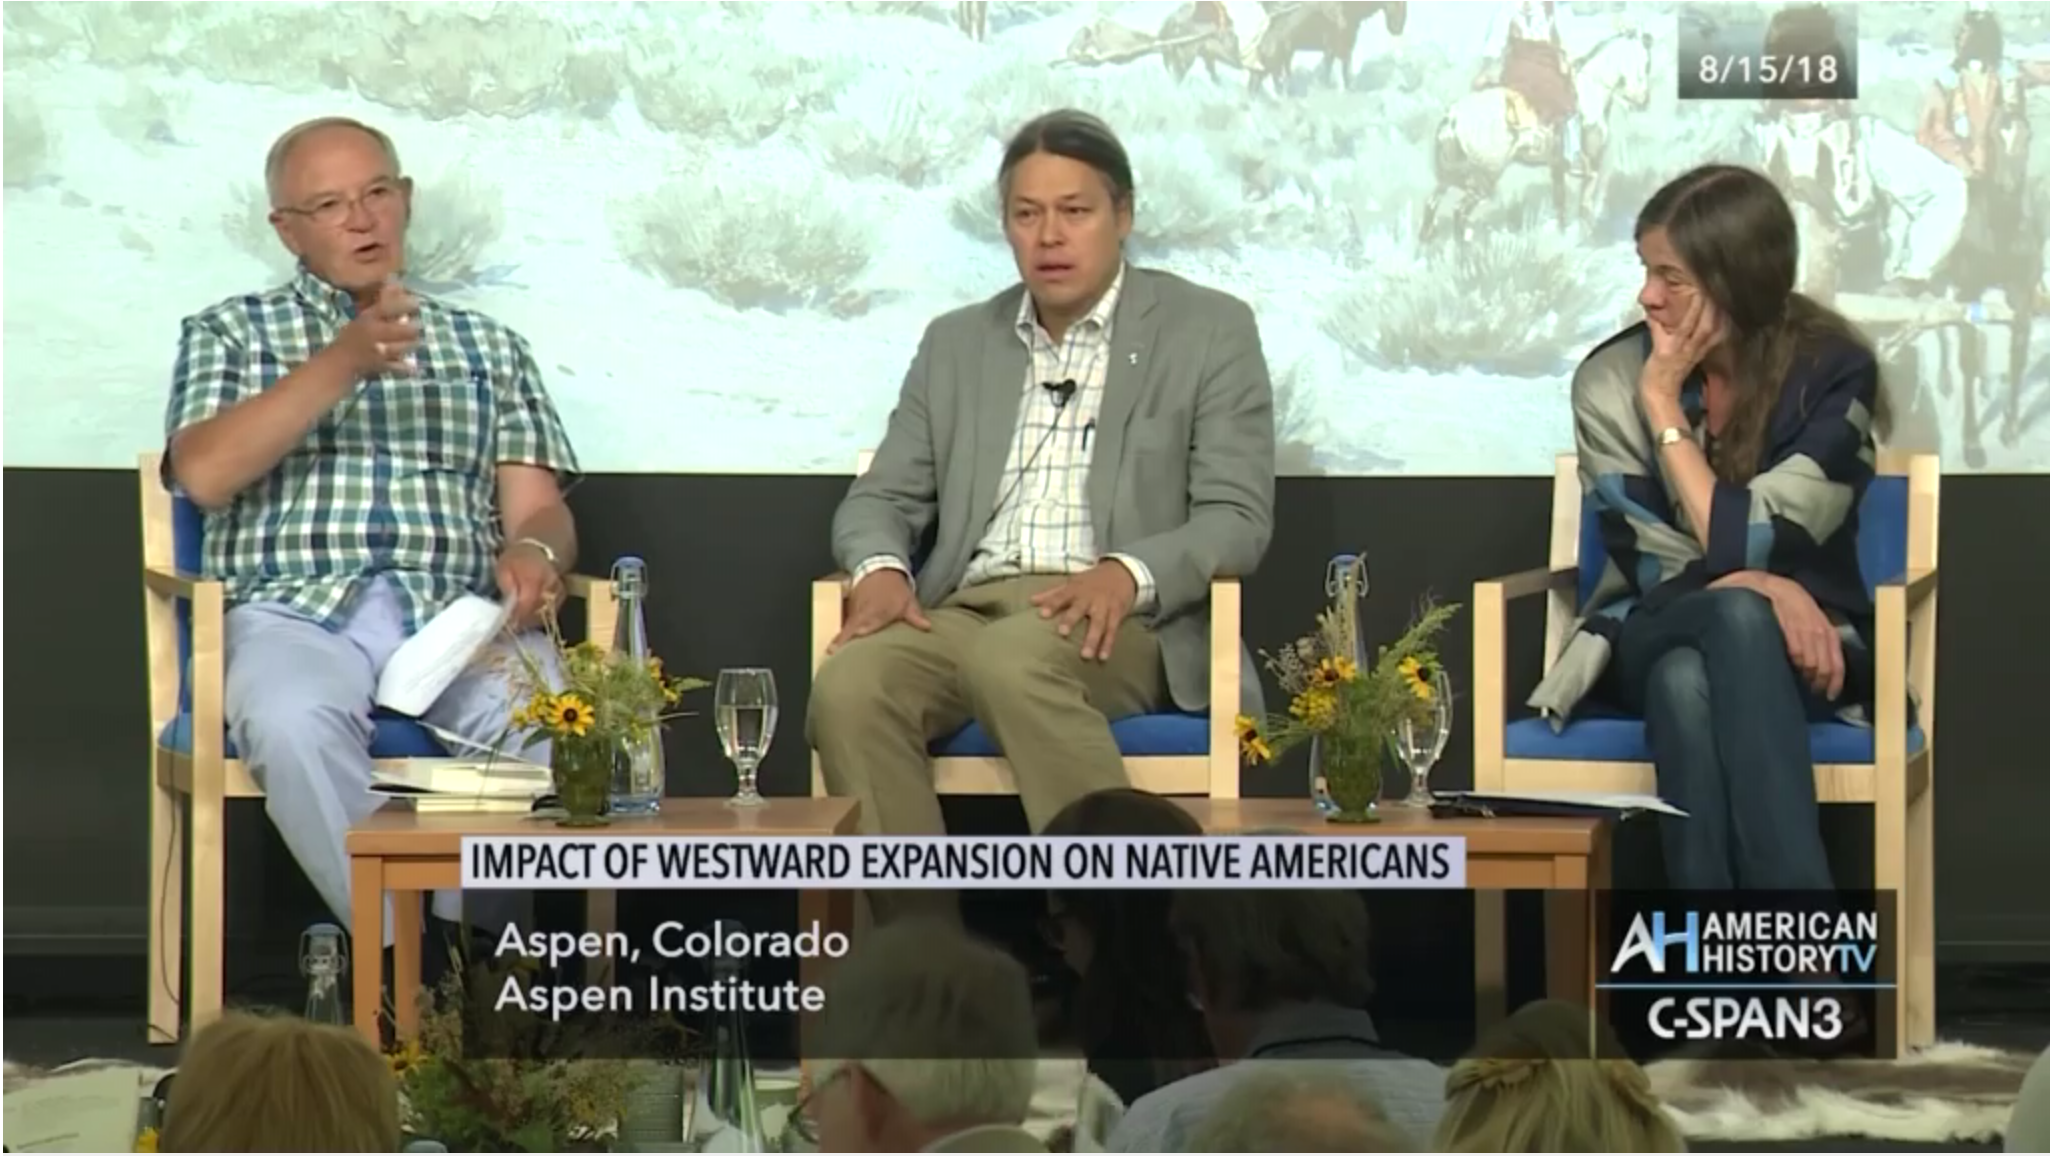 Terry Anderson moderates a panel featuring Yale University's Ned Blackhawk and the Center of the American West's Patricia Limerick.